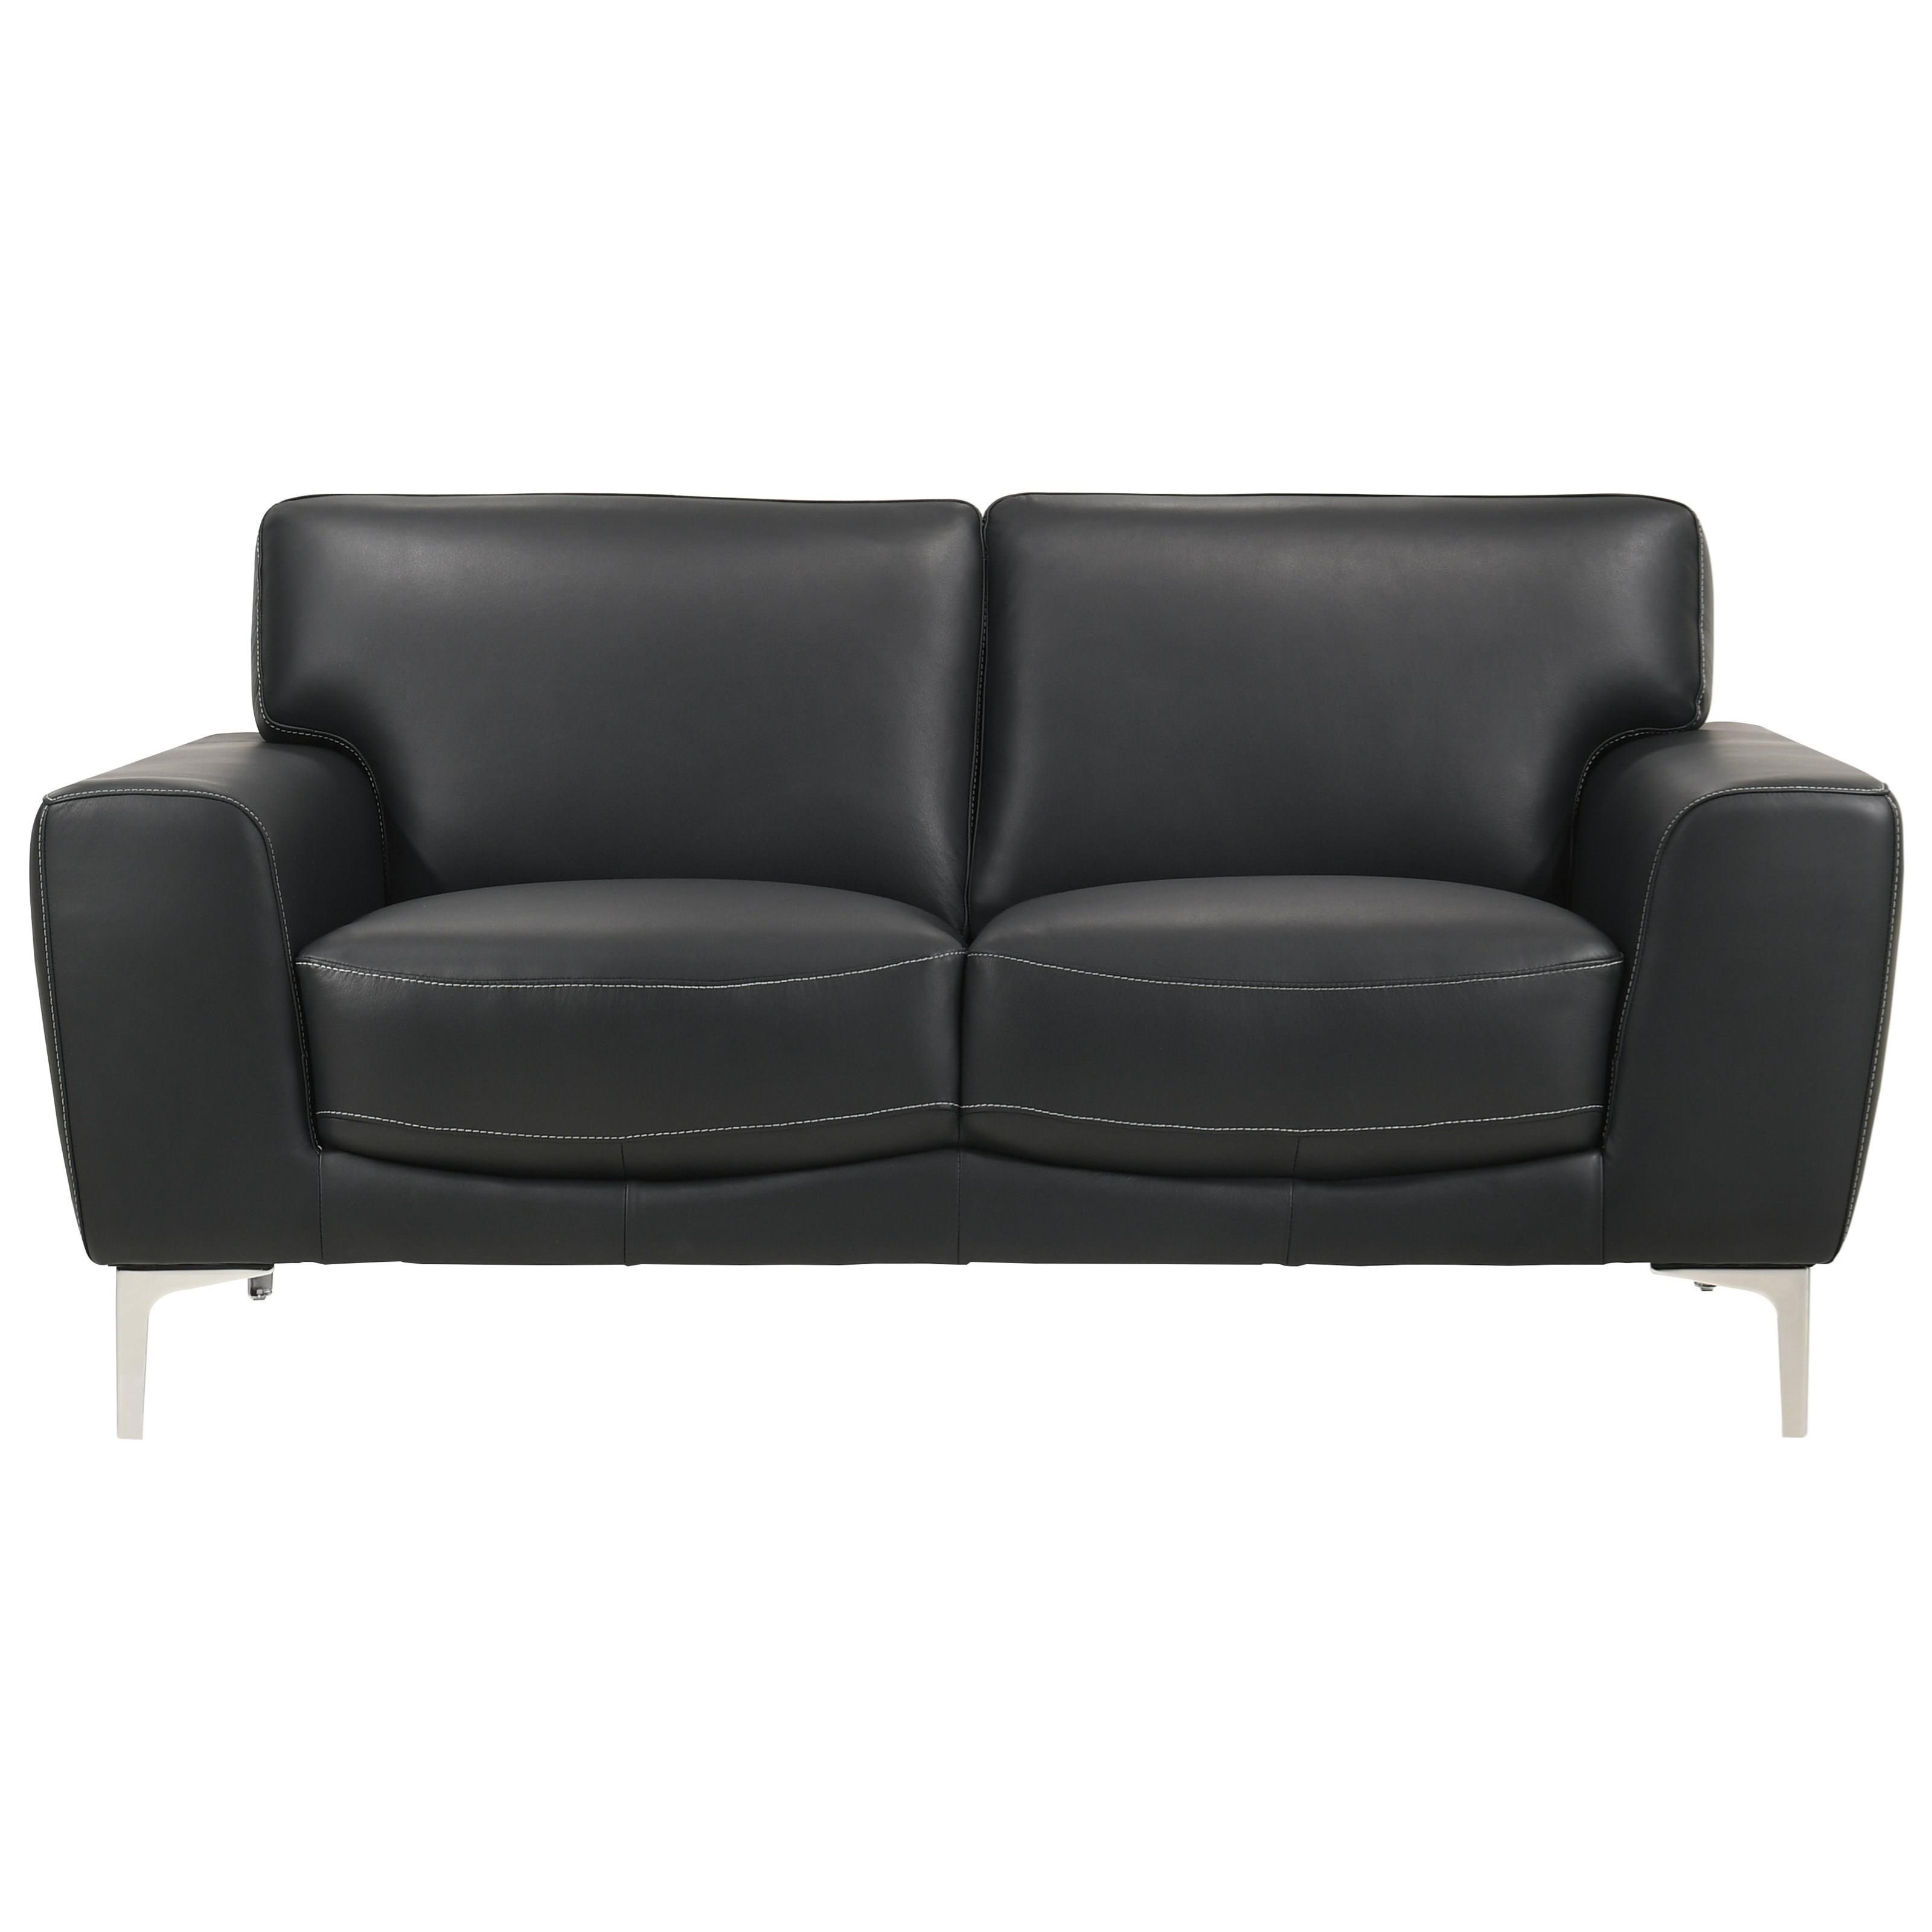 CARRARA Loveseat by New Classic at Beds N Stuff